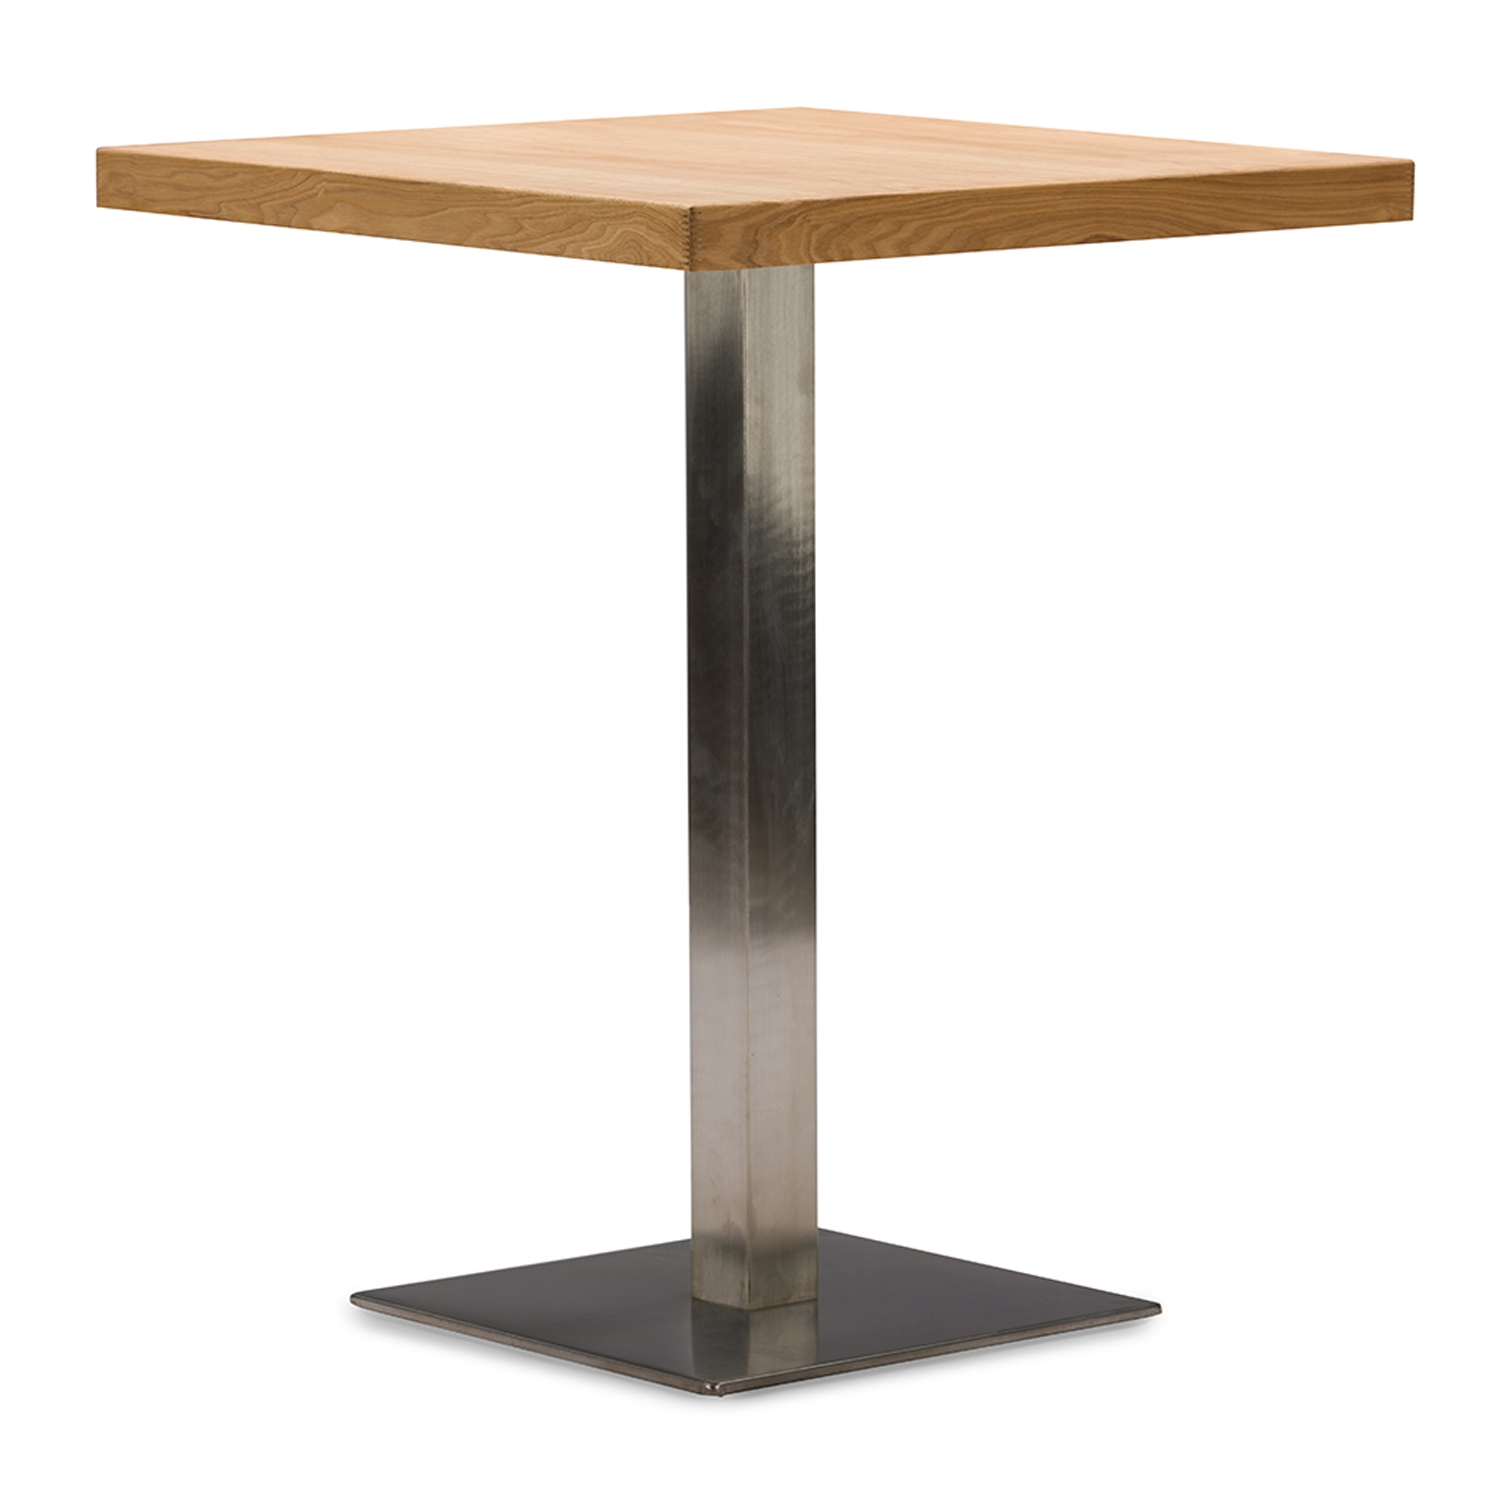 Beau ... Baxton Studio Owen 24 Inch Square Natural Top Bistro Table With Chrome  Base   IEM ...